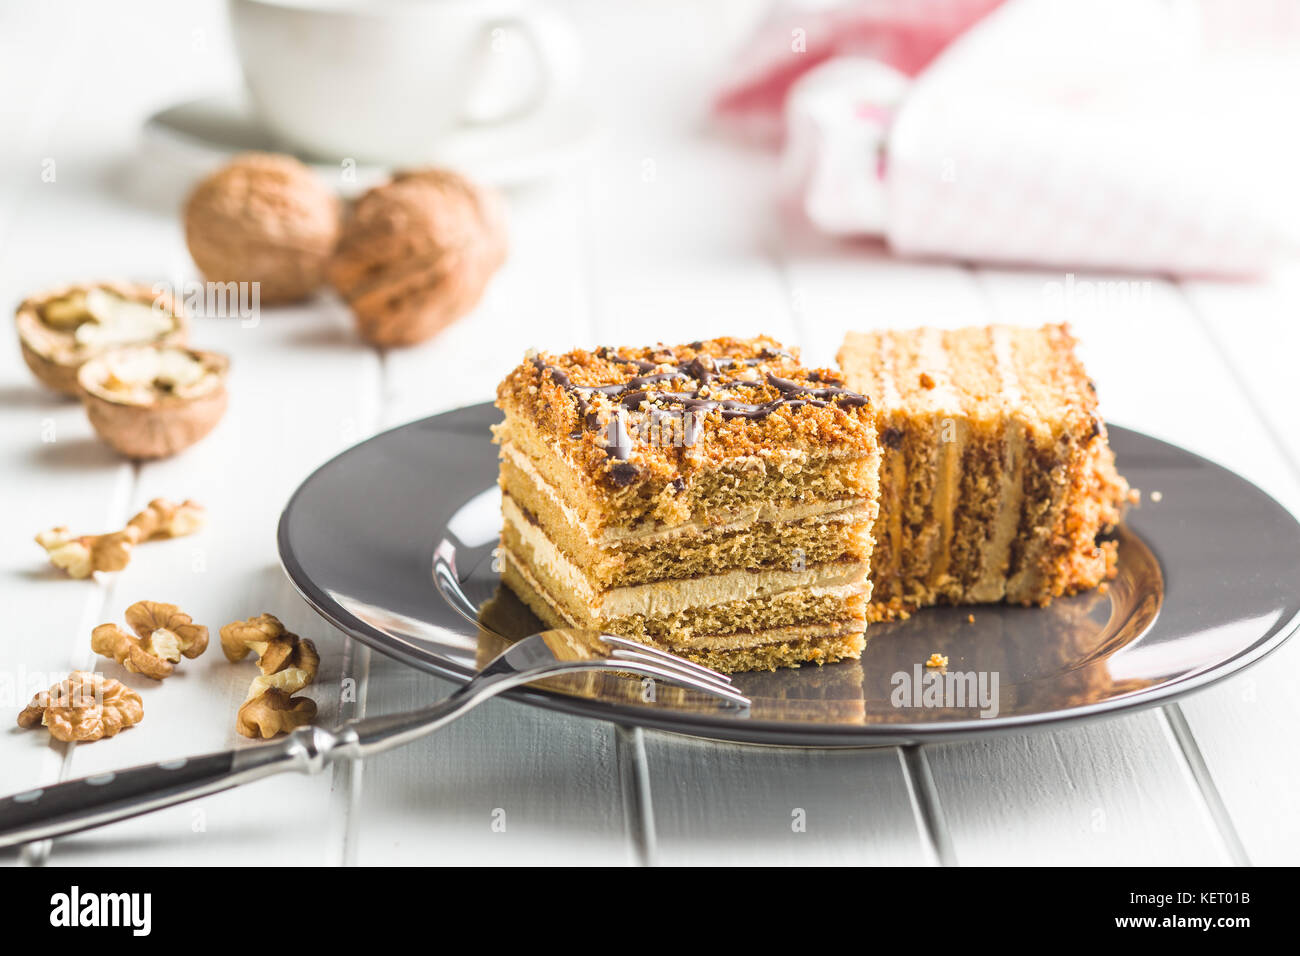 Cake with walnuts and honey on plate. - Stock Image